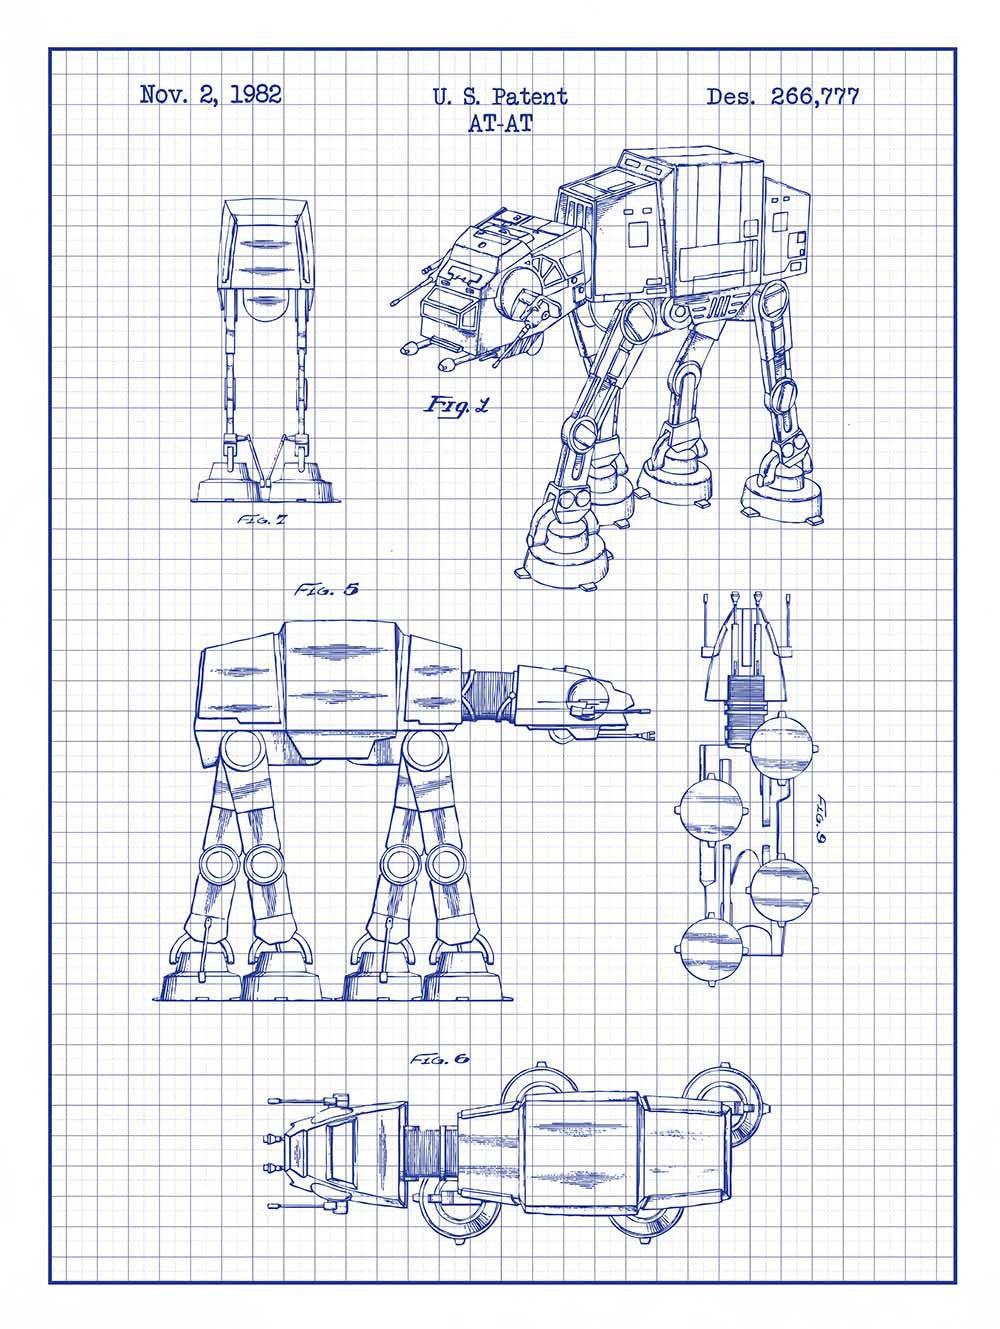 Patent Prints -  ATAT Walker - 1981